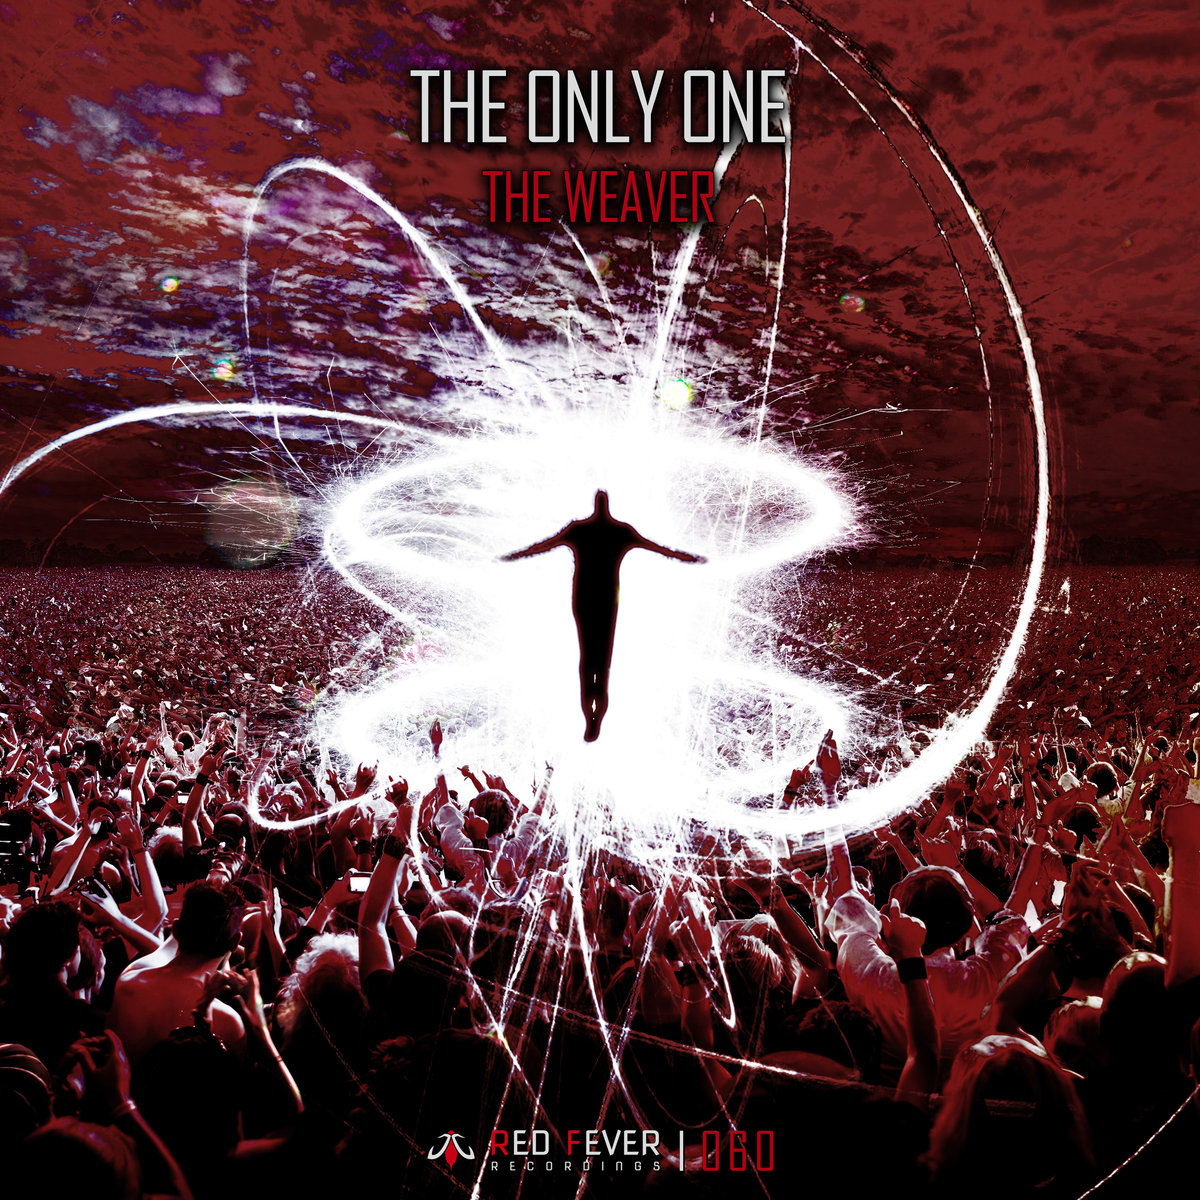 The Weaver - Doing My Job @ 'The Only One' album (electronic, the weaver)